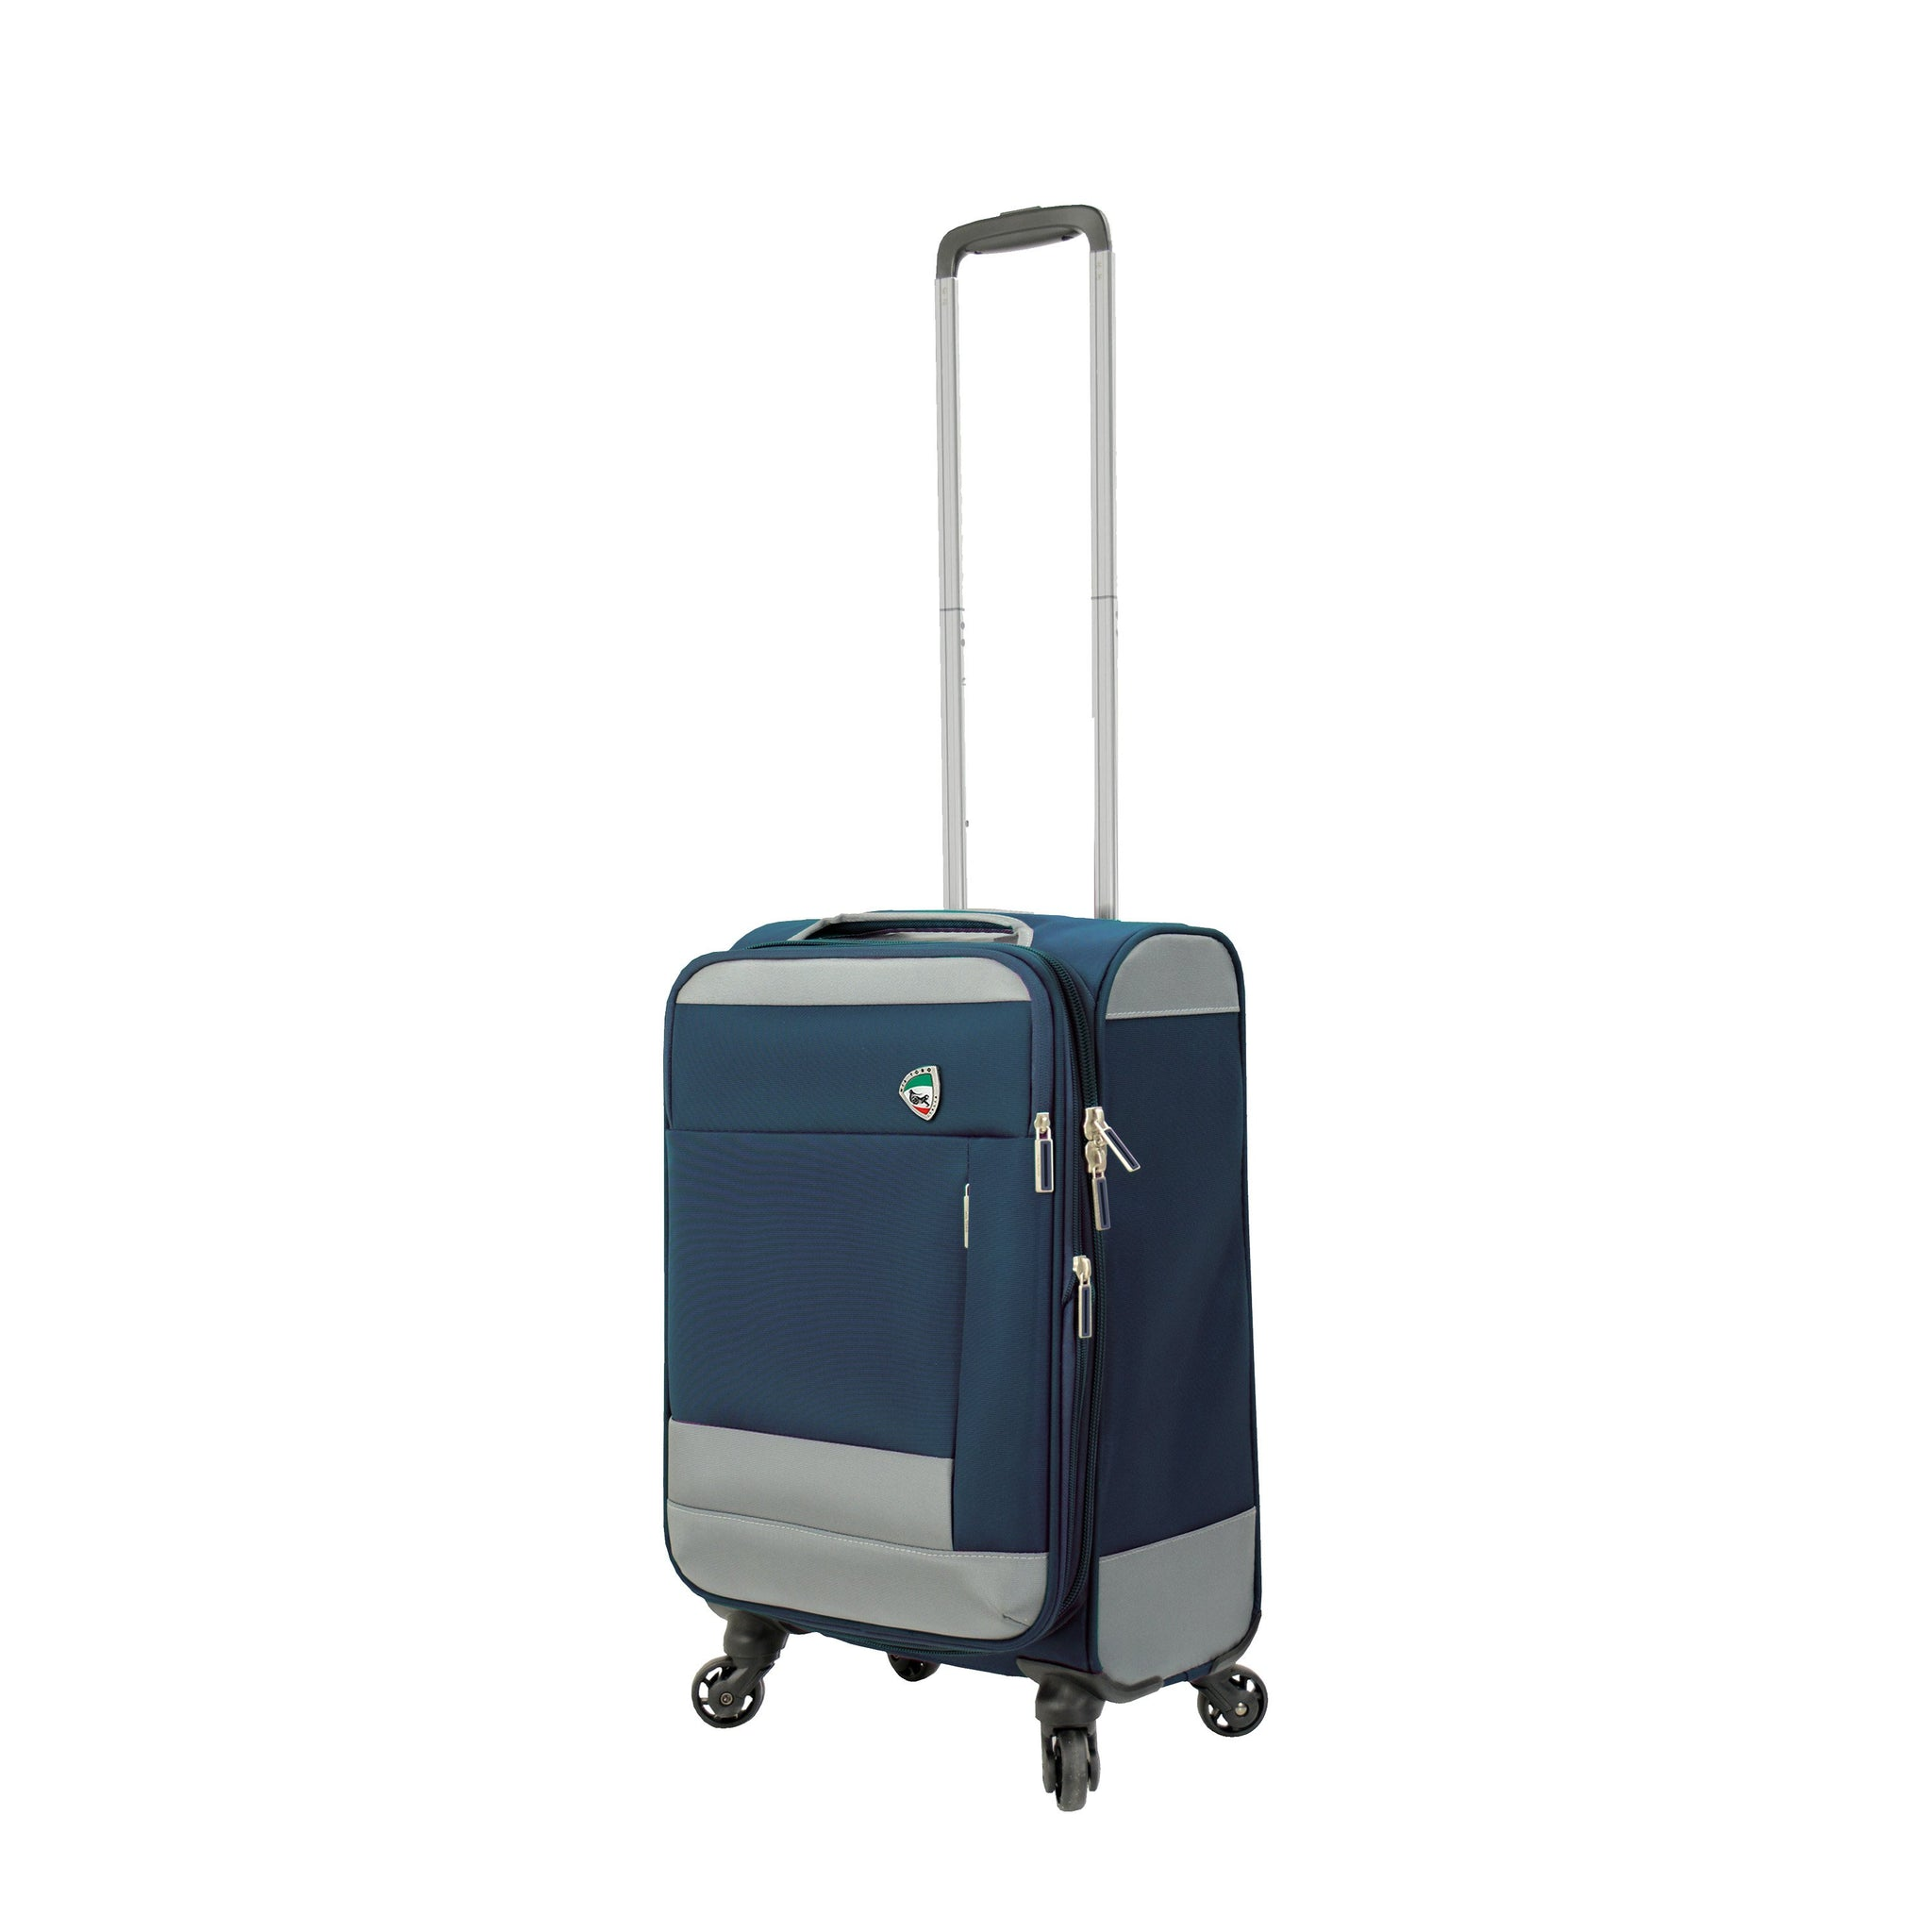 Mia Toro ITALY Reka Softside Spinner Carry-On Luggage